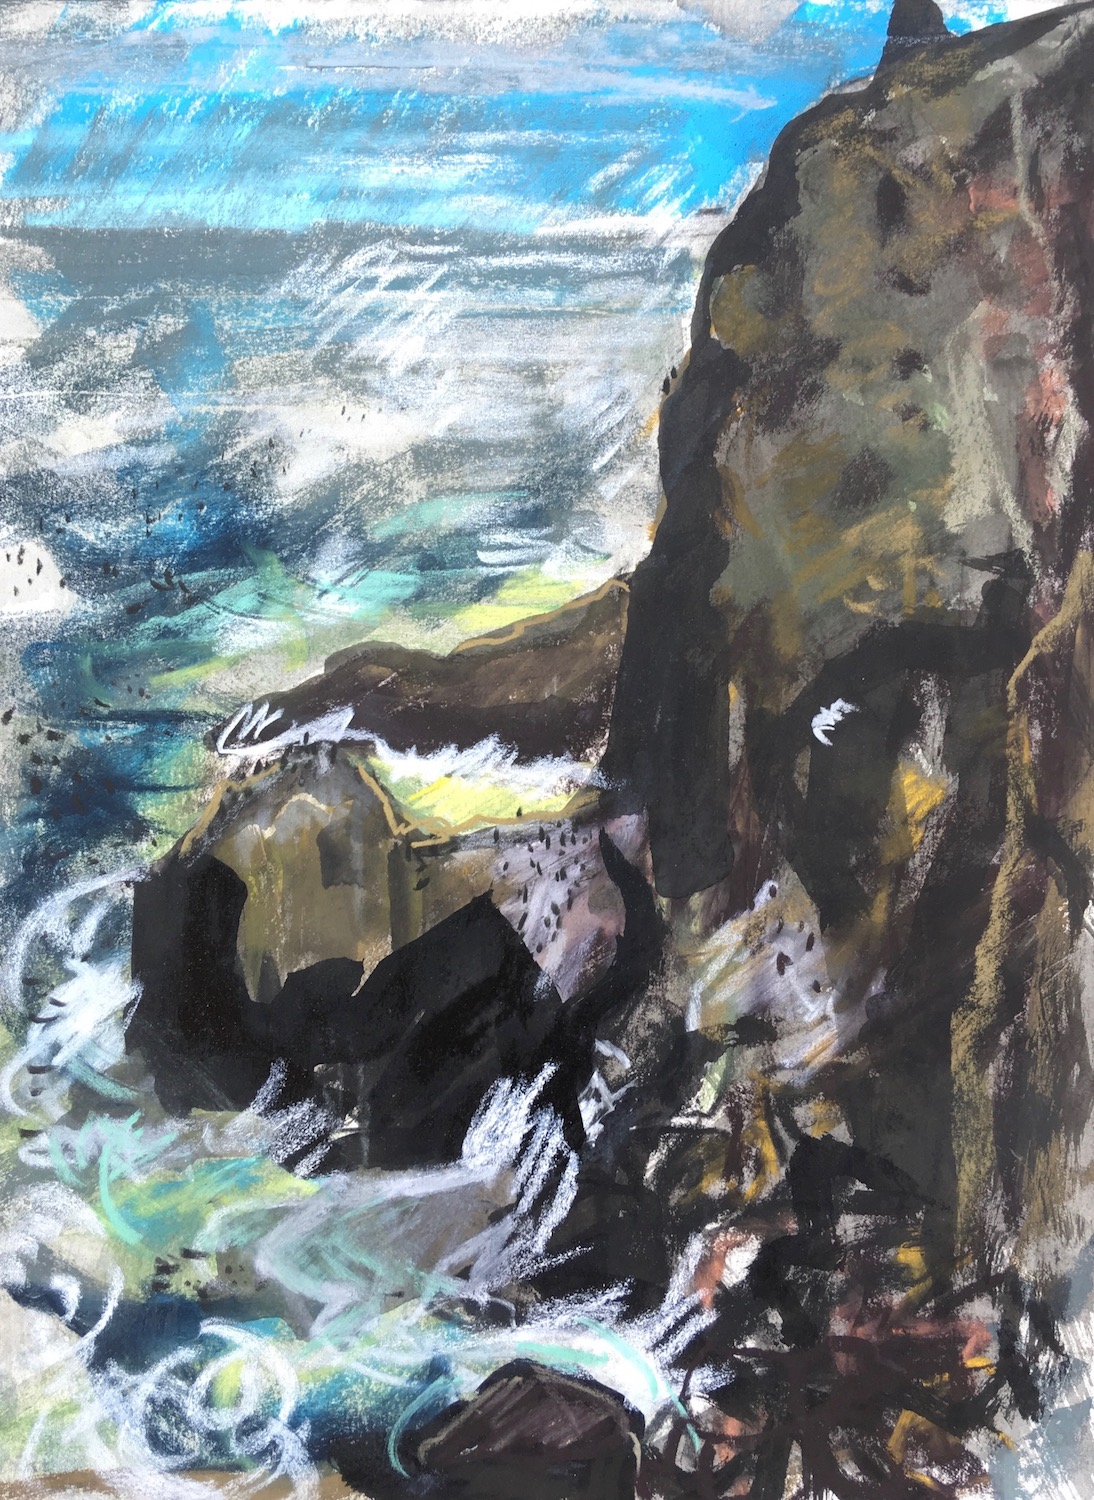 Drawings at St Abb's Head: my focus was on conveying the tough and immense environment these thousands of seabirds nest and breed in each year.